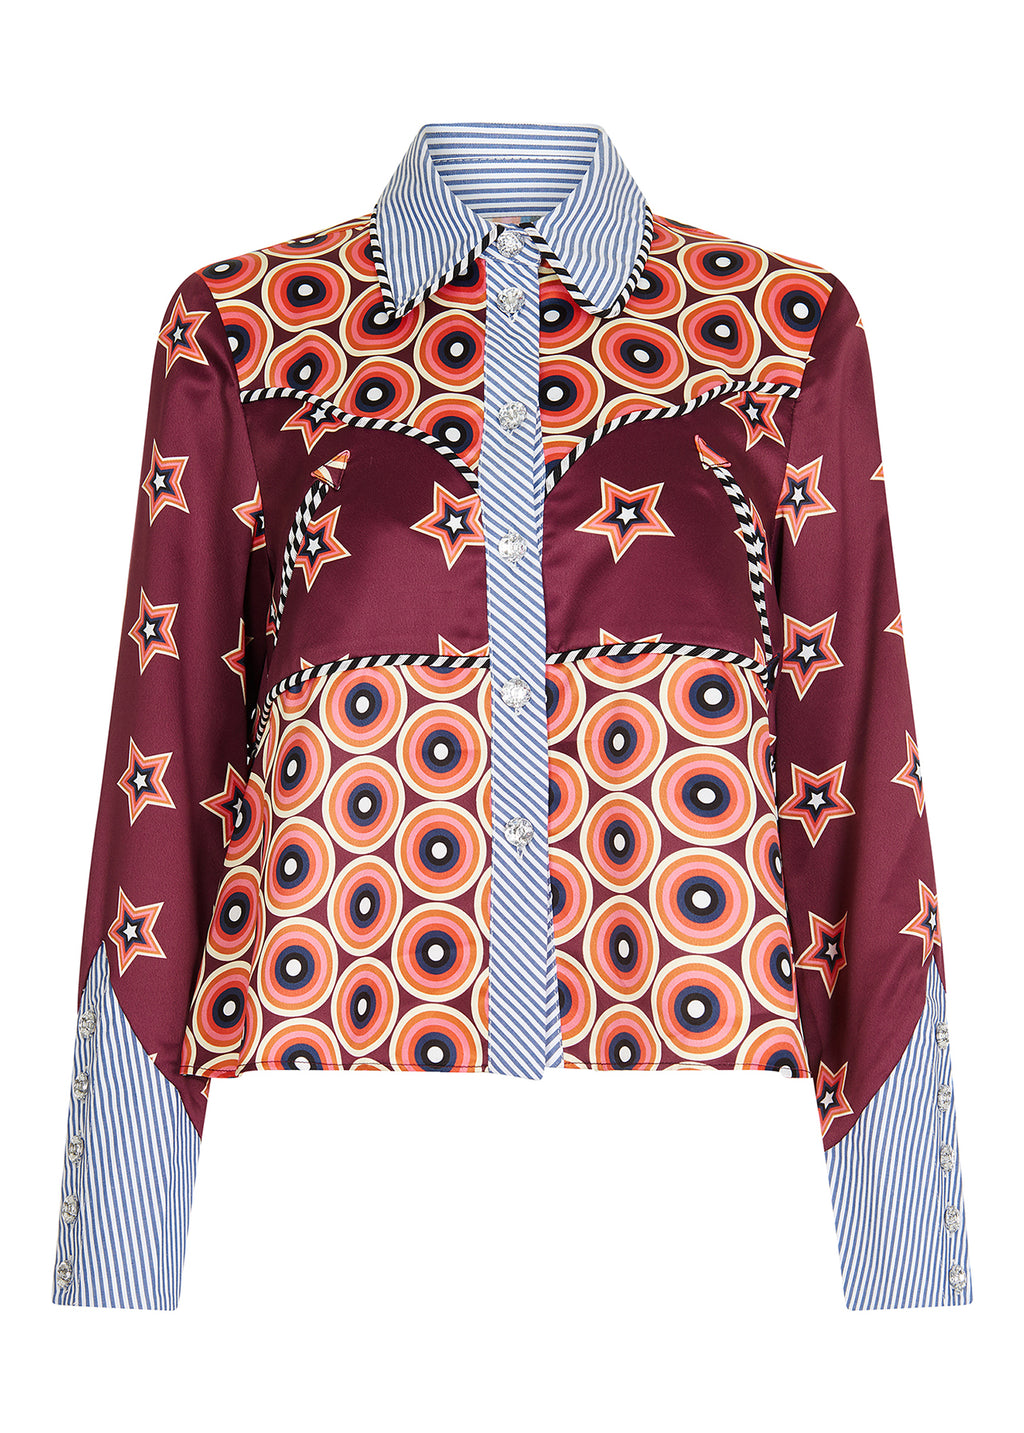 Satin and Cotton Western Shirt